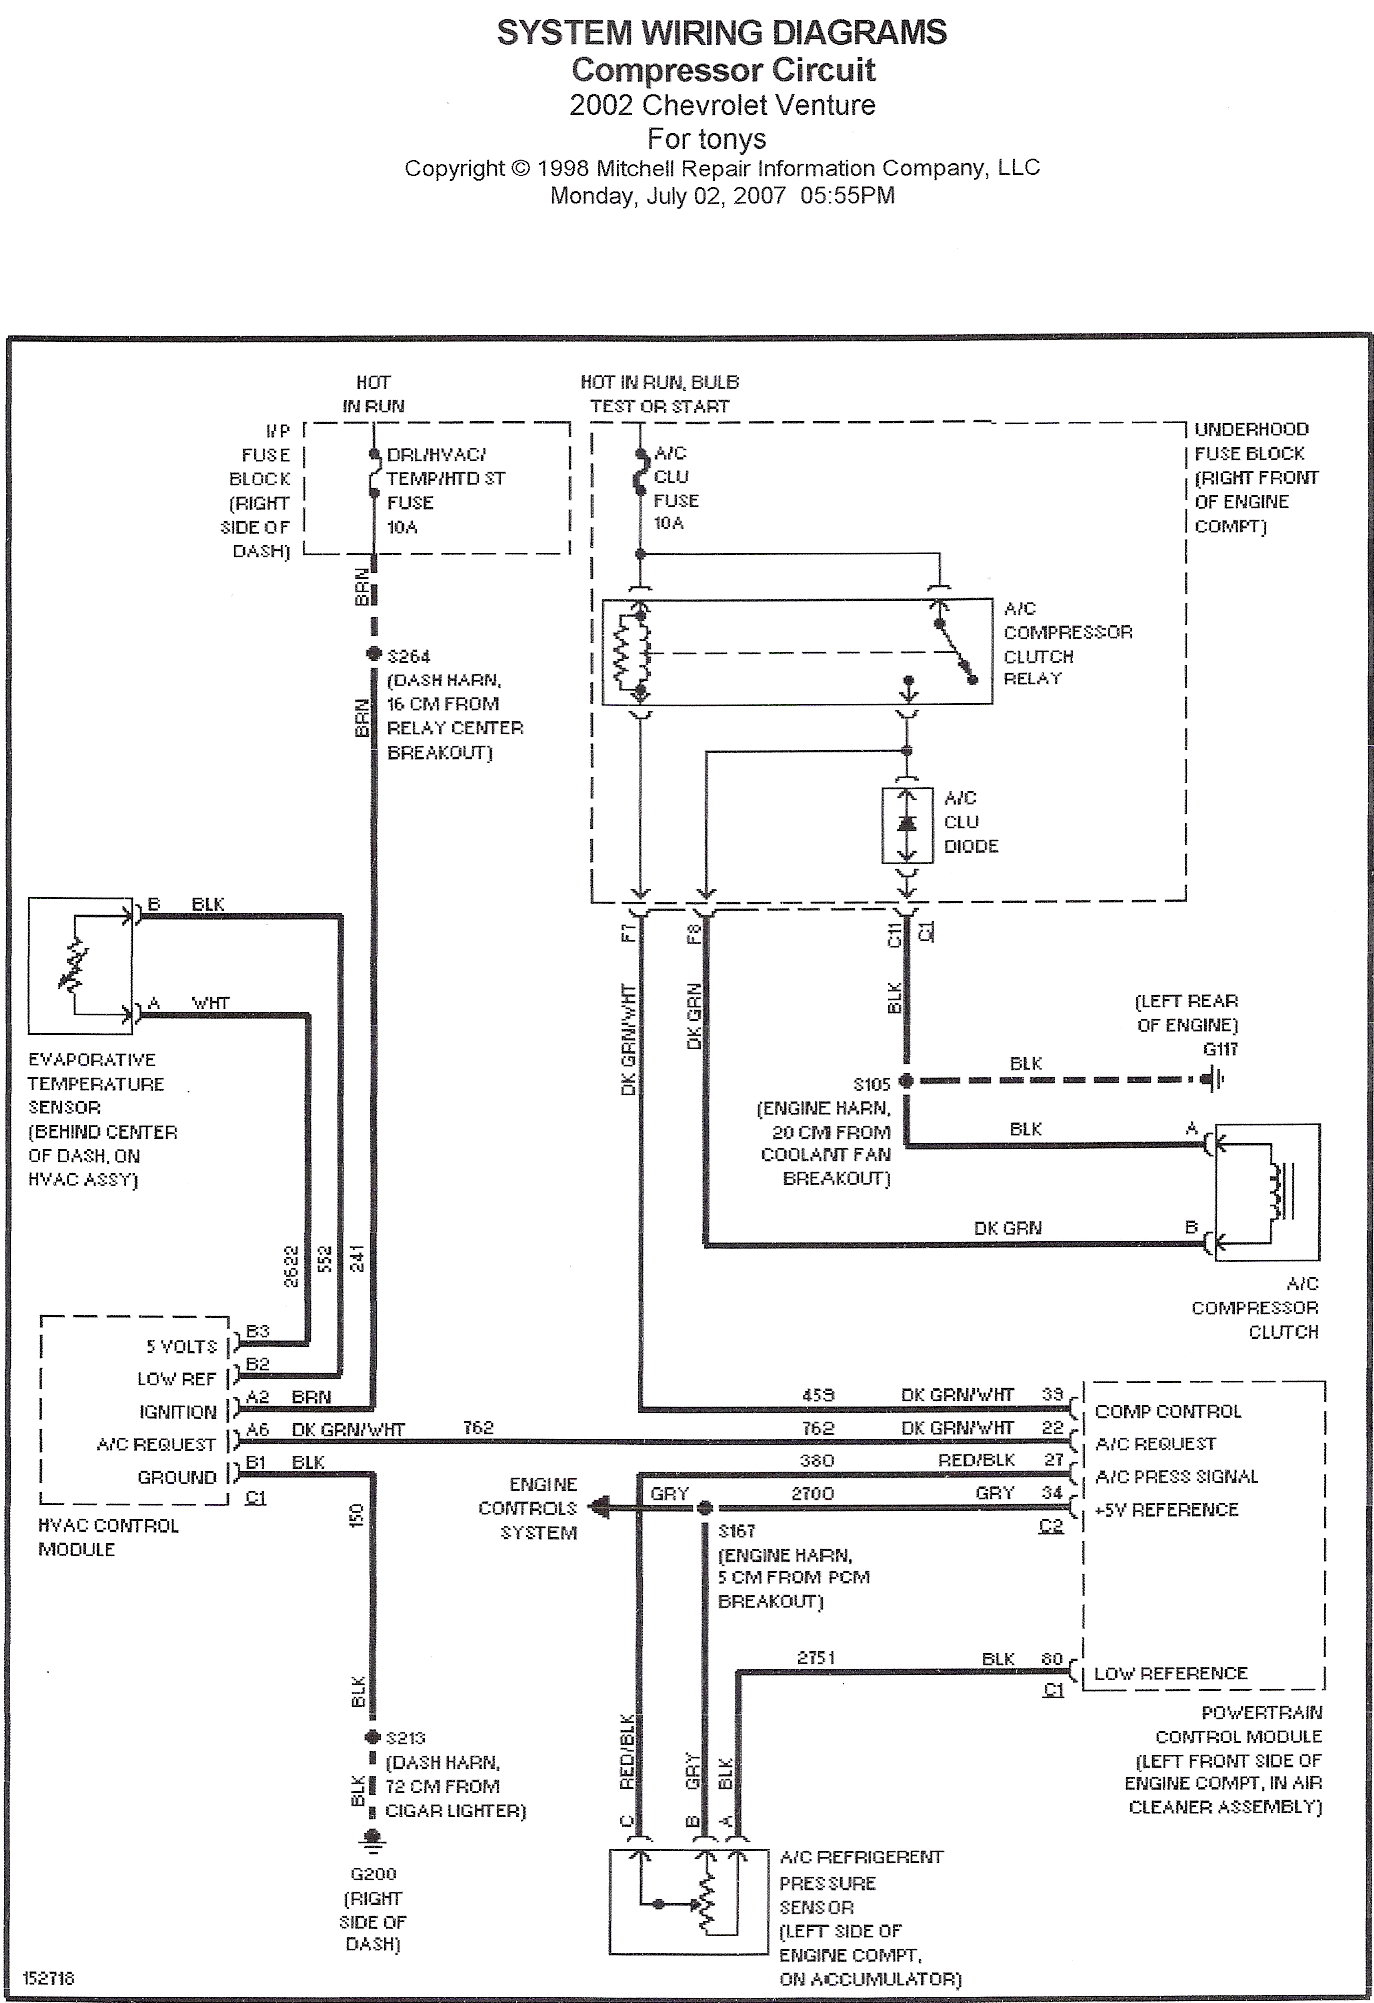 DIAGRAM] 2005 Chevy Venture Wiring Diagram FULL Version HD Quality Wiring  Diagram - DIAGRAMMYCASE.COIFFURE-A-DOMICILE-67.FR